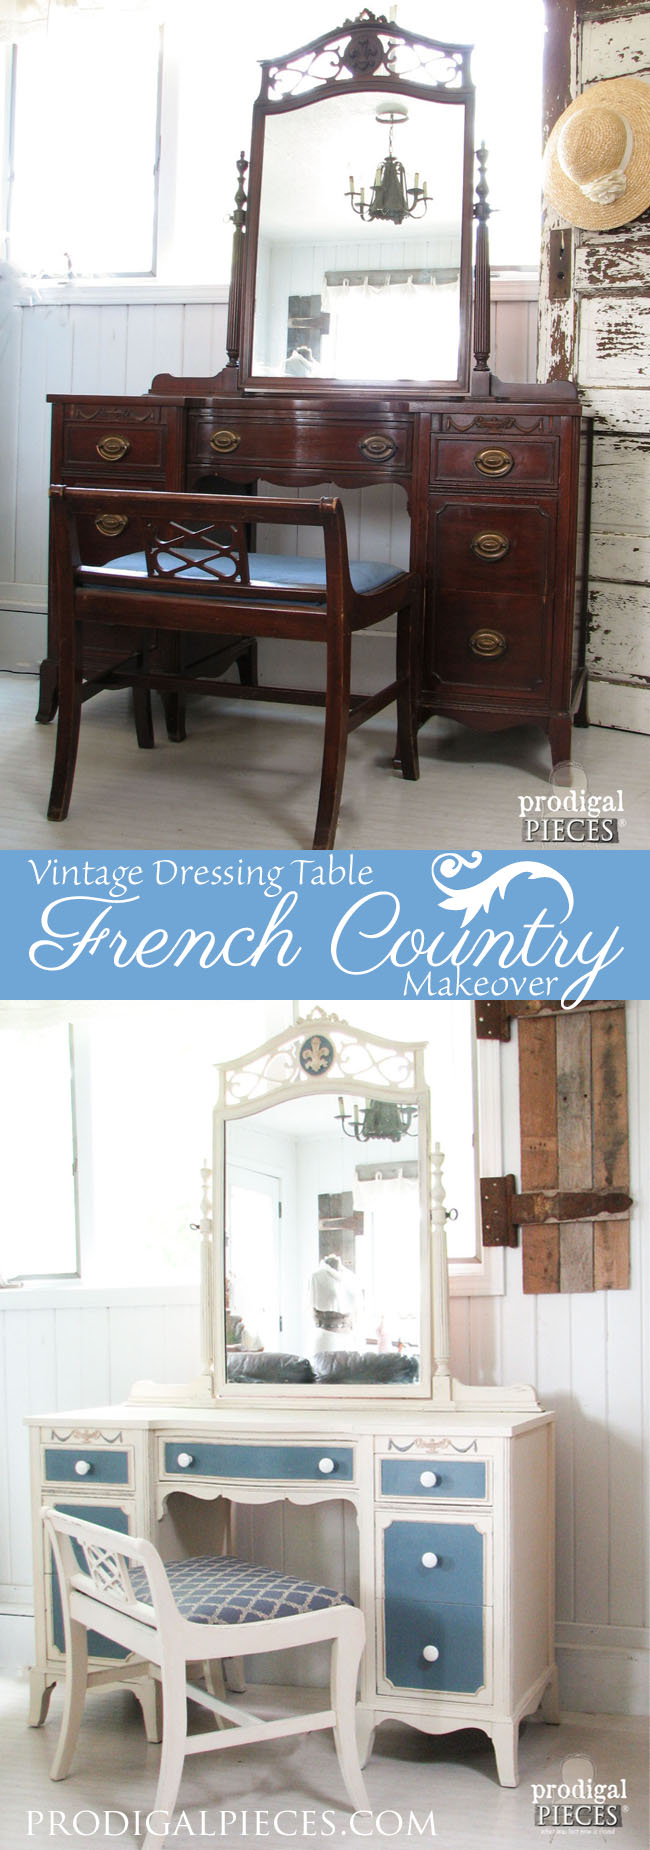 Vintage Dressing Table Gets a French Country Makeover by Prodigal Pieces www.prodigalpieces.com